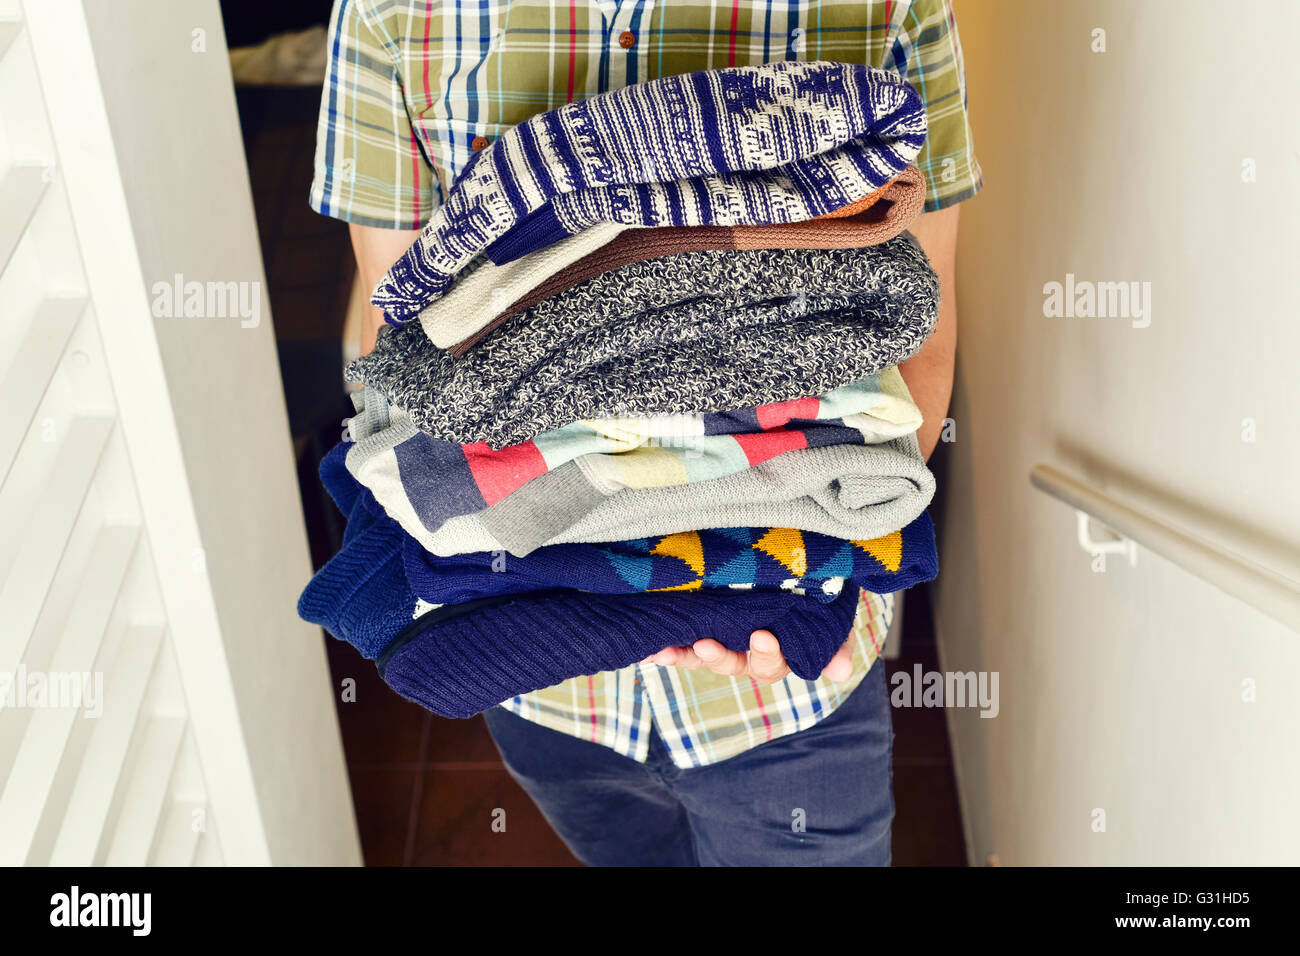 closeup of a young man wearing a short sleeved shirt carrying a pile of different folded sweaters Stock Photo